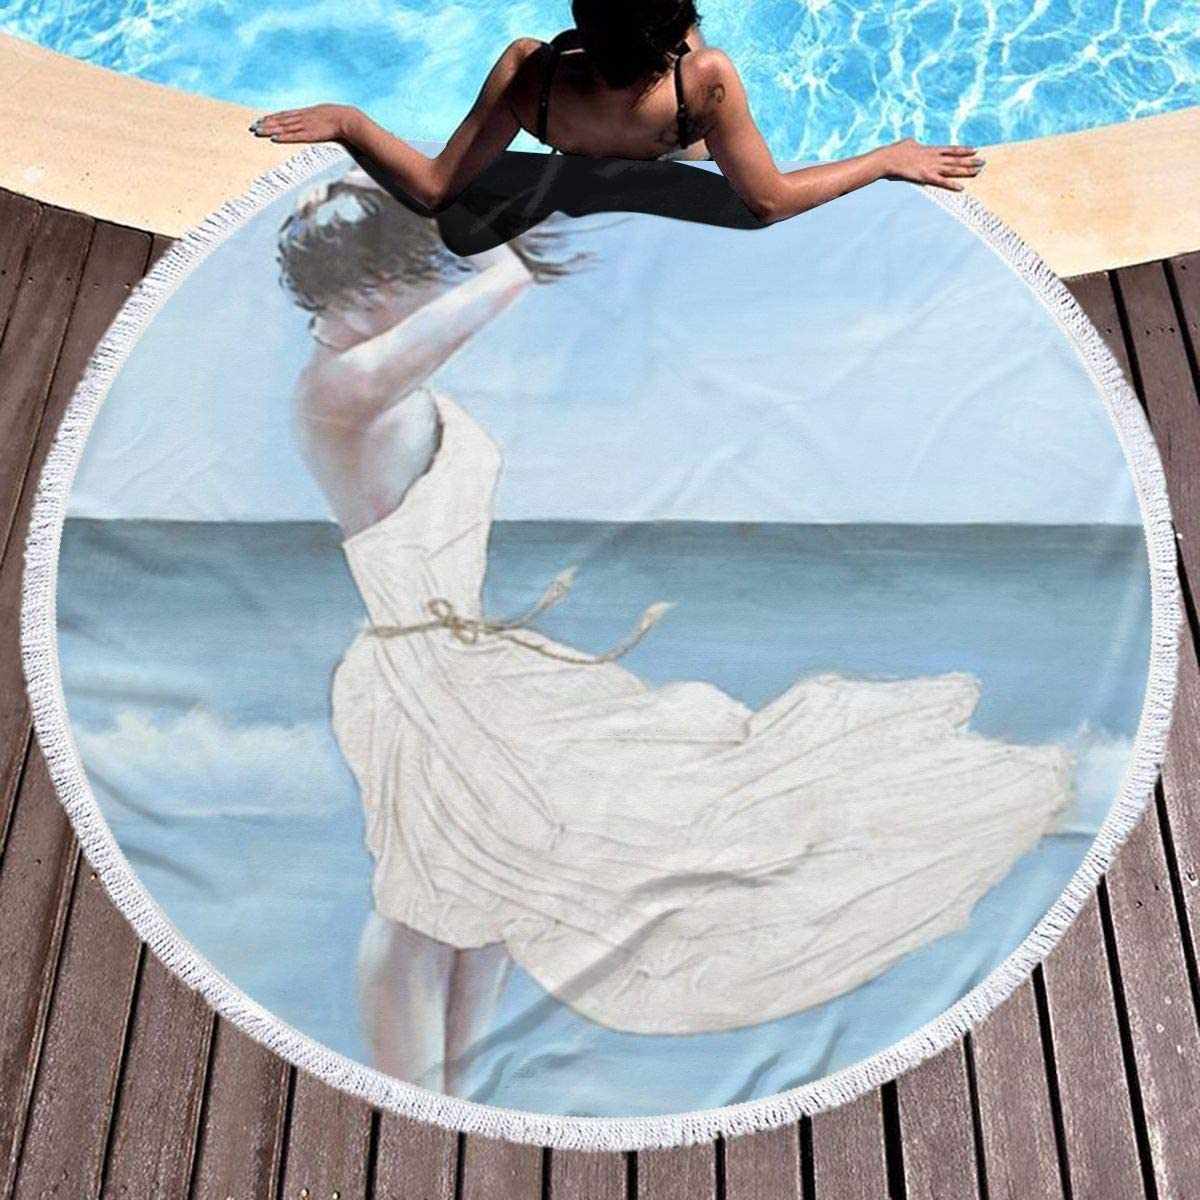 chenguang4422 Girl On A Windy Beach Printed Round Beach Towel Yoga Picnic Mat Round Tablecloth Ultra Soft Super Water Absorbent Terry Towel with Tassels